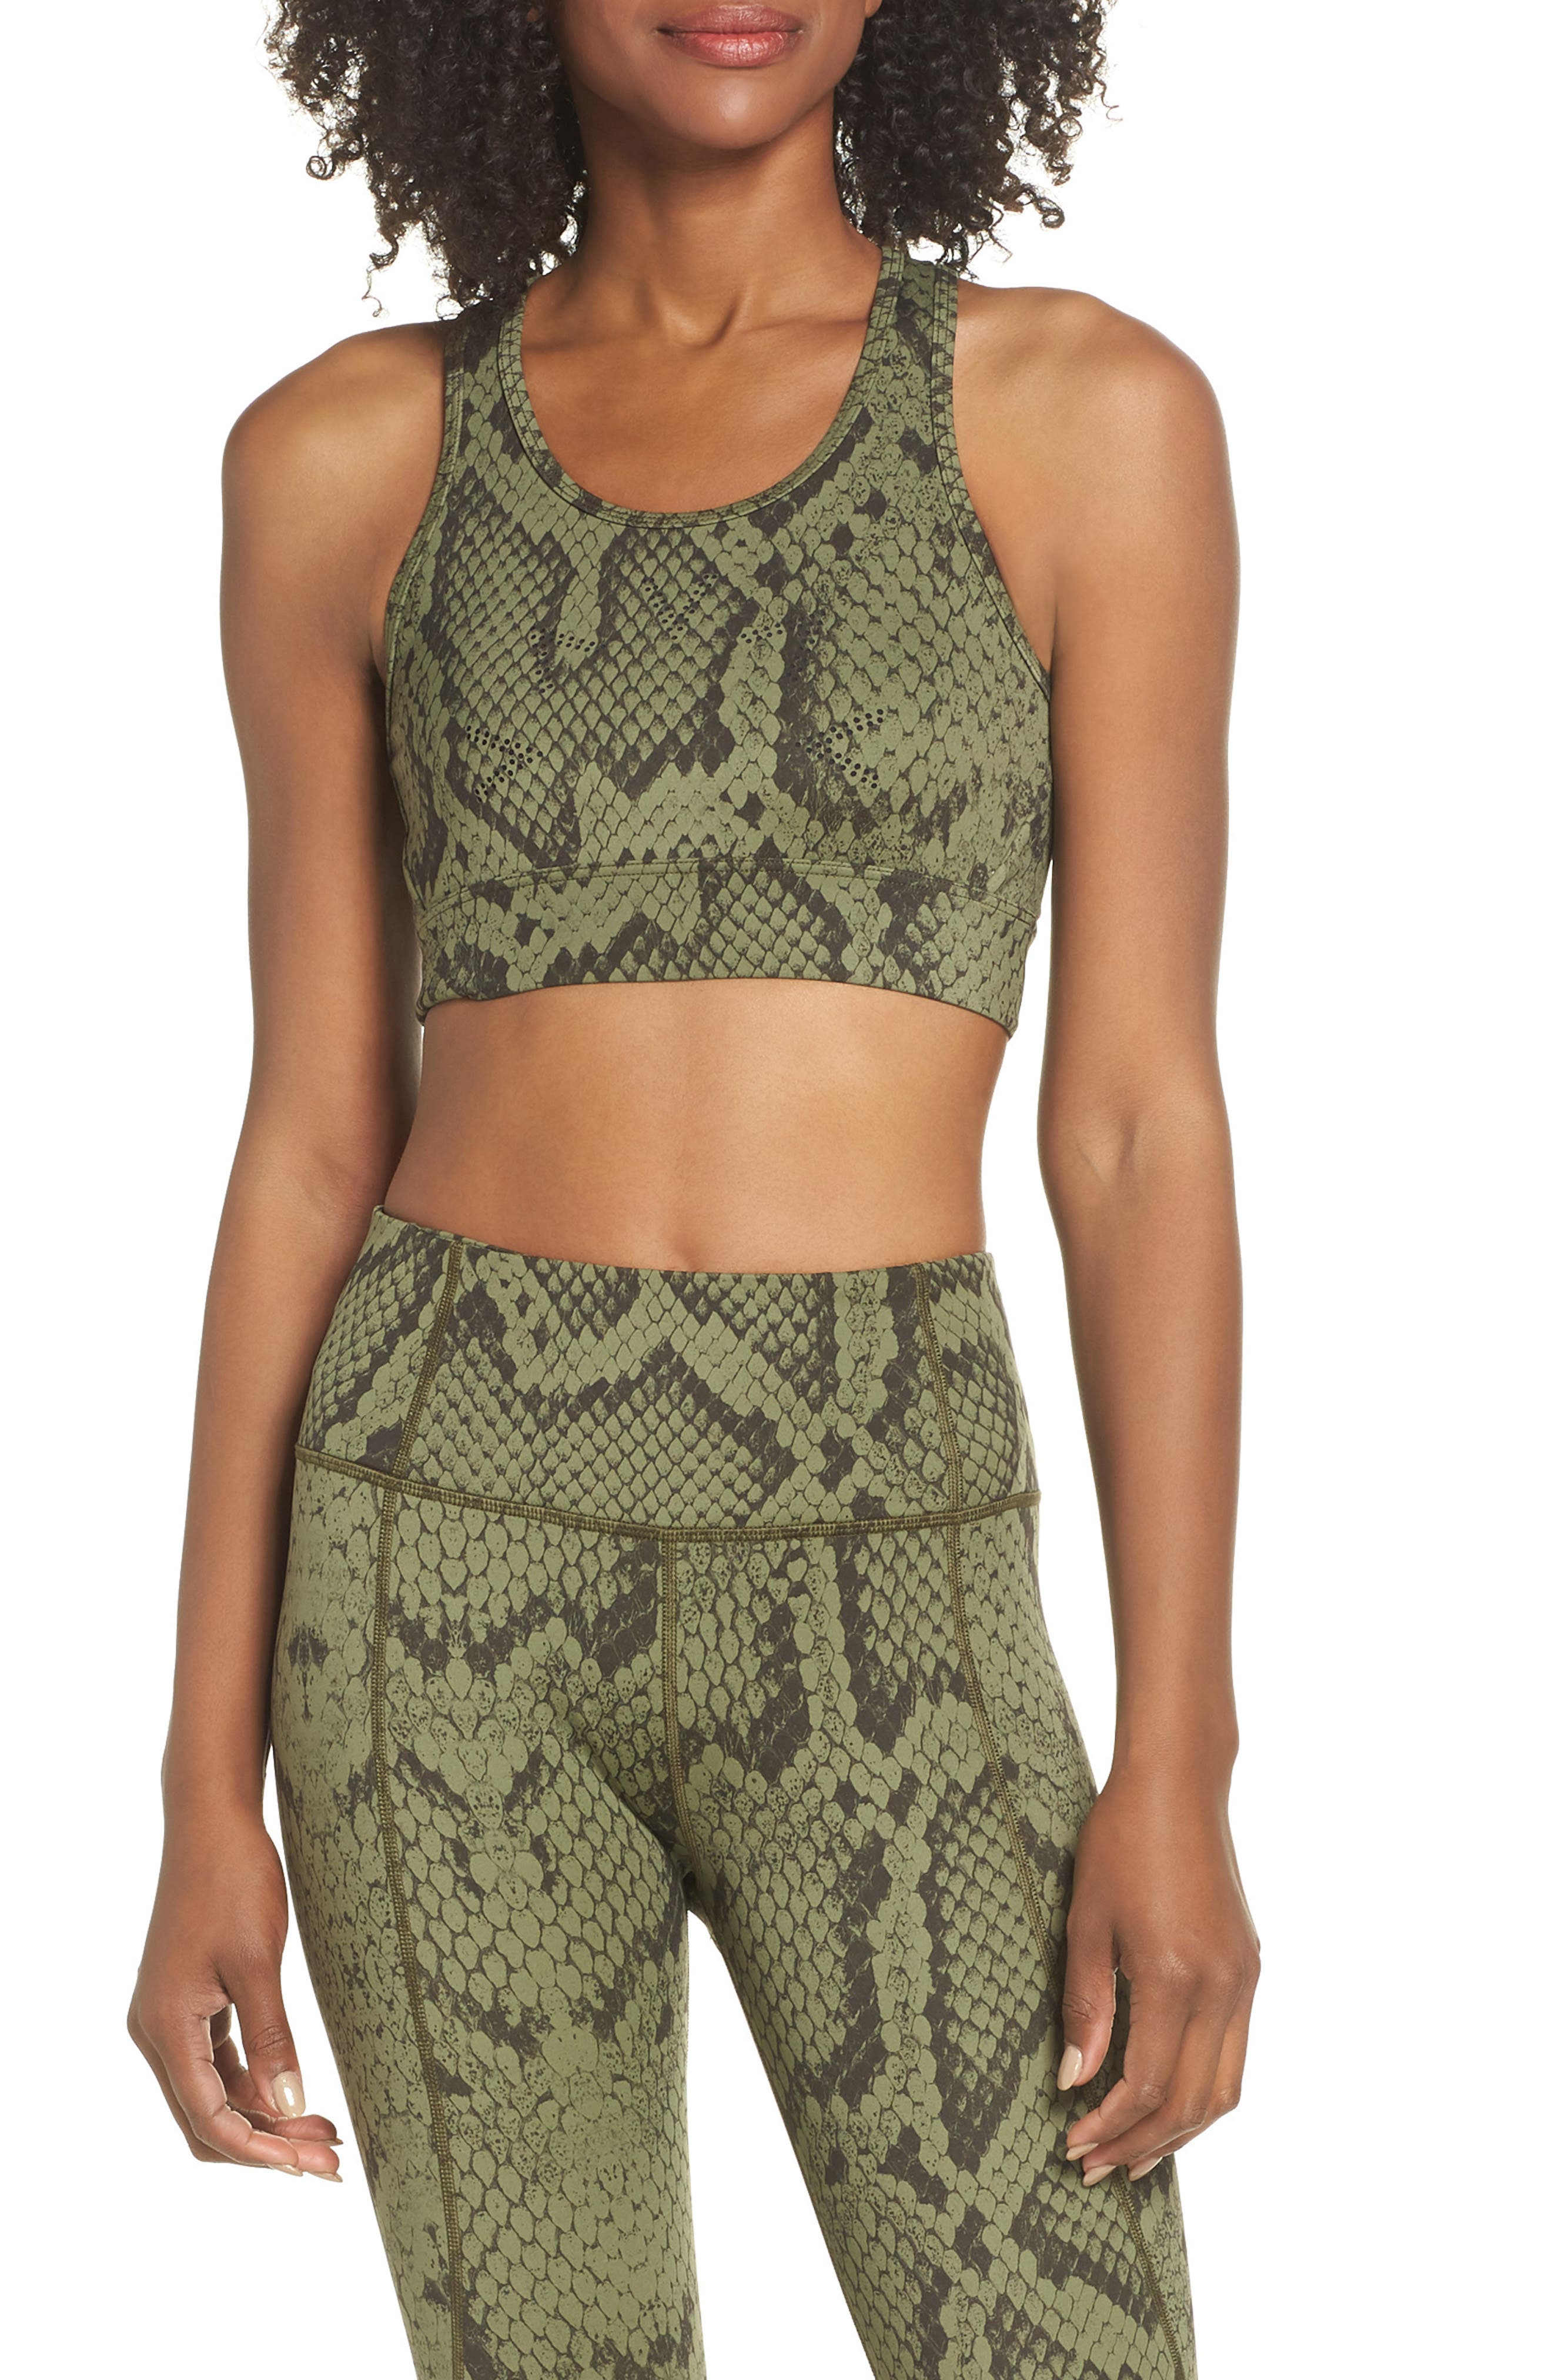 Berkeley Sports Bra,                         Main,                         color, OLIVE SNAKE